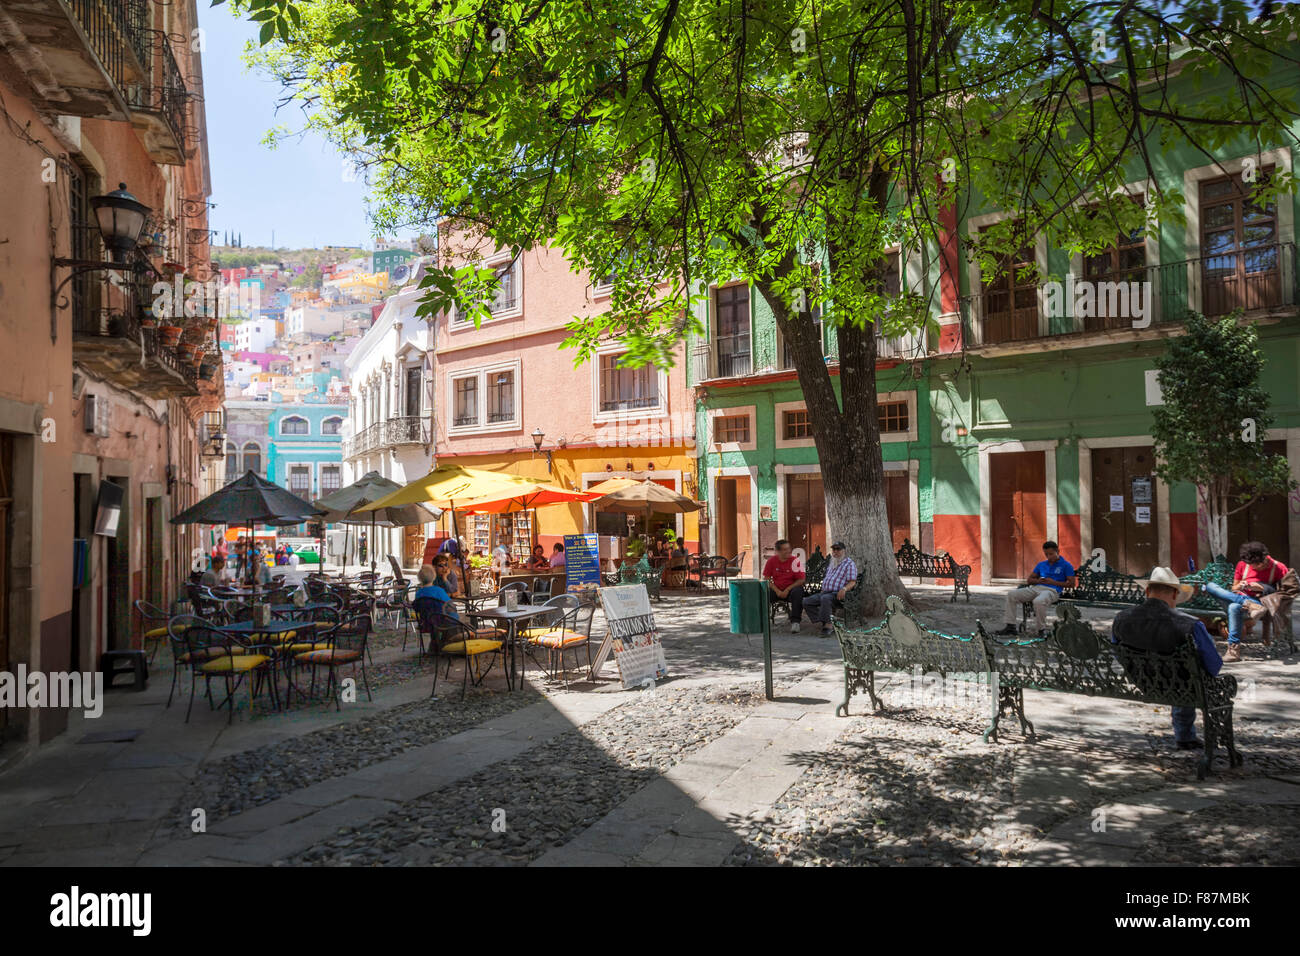 People relaxing in one of Guanajuato, Mexico's colorful plazas. - Stock Image